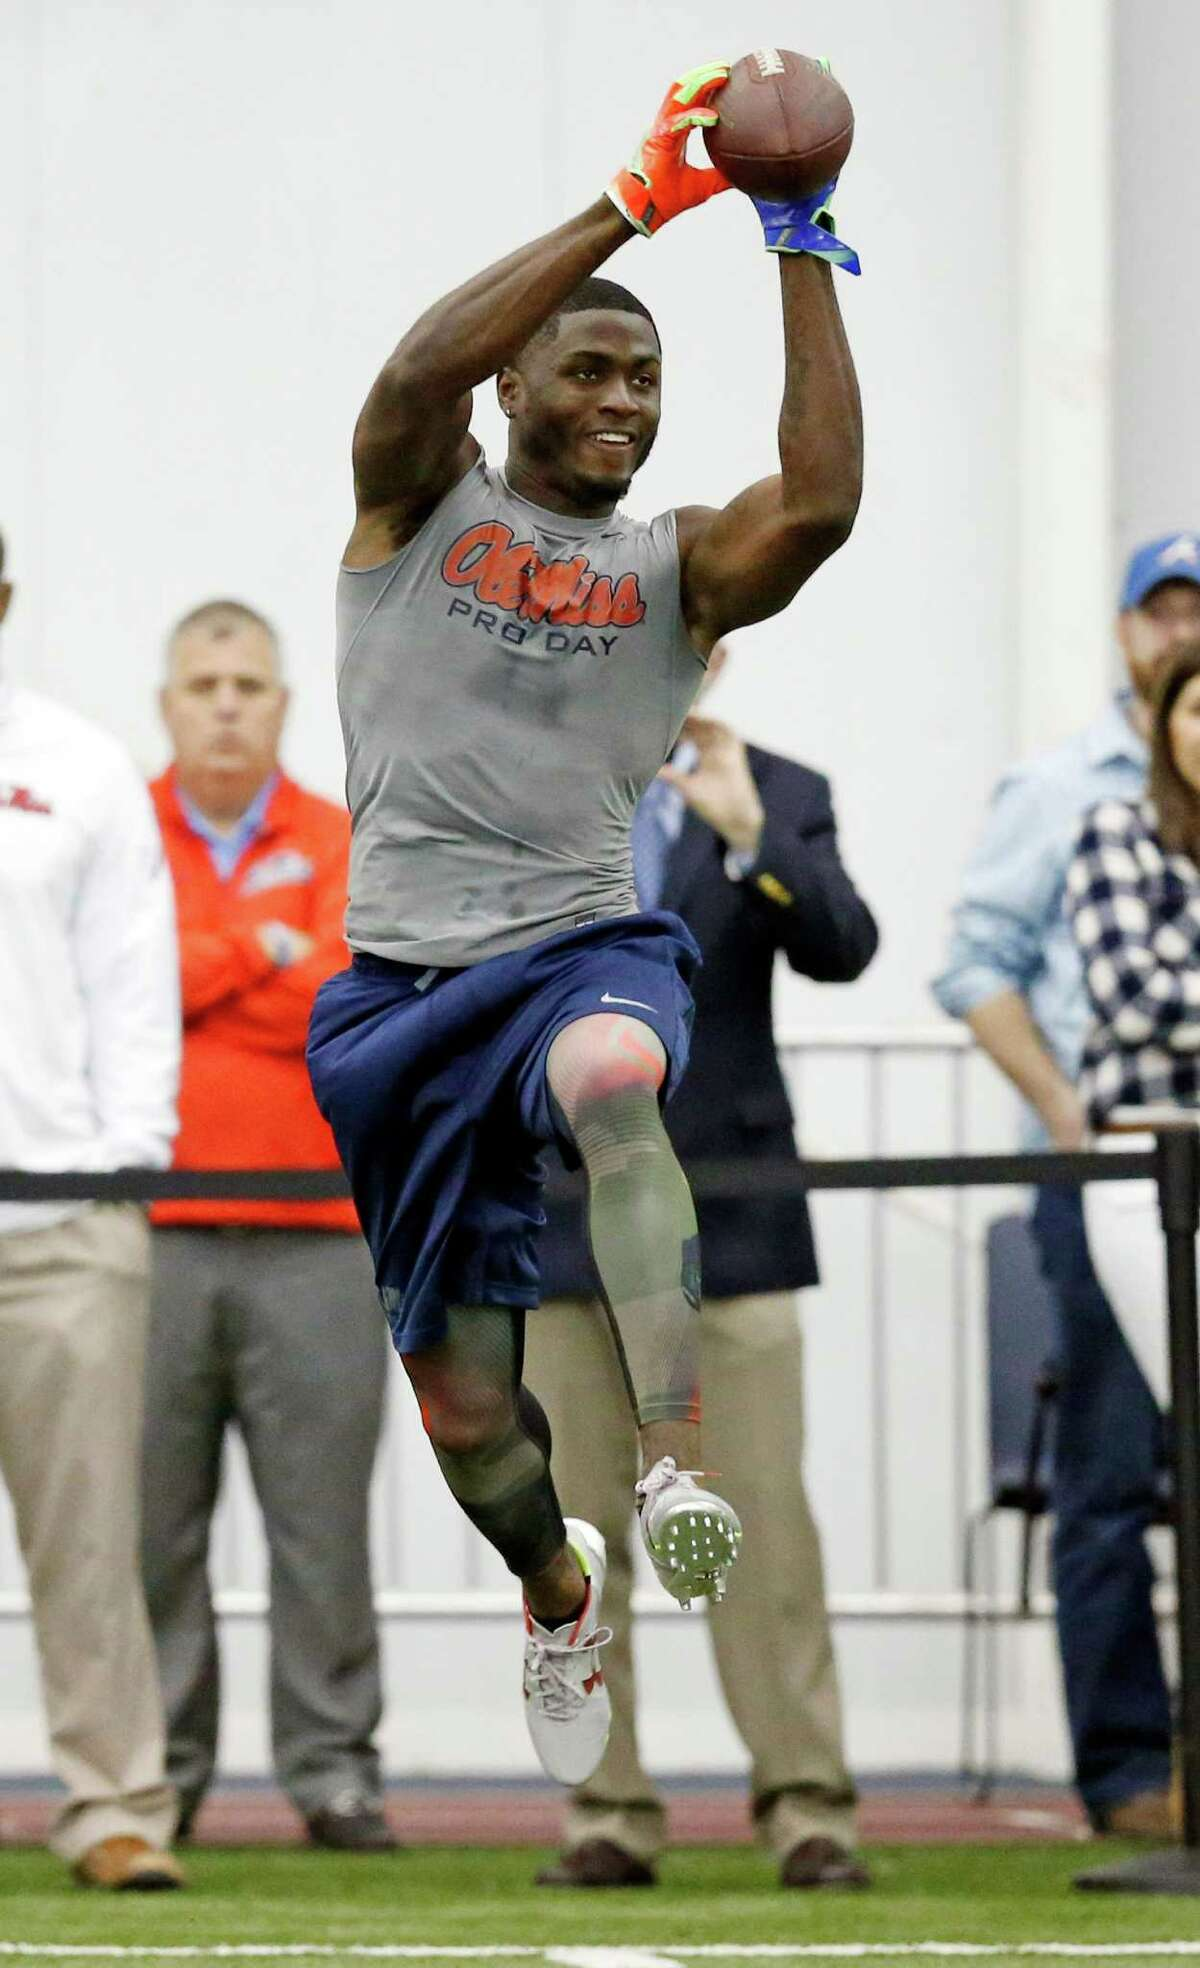 Wide receiver Laquon Treadwell reaches for a pass during drills at Mississippi's NFL football Pro Day, Monday, March 28, 2016, in Oxford, Miss. The event is to showcase players for the upcoming NFL football draft. (AP Photo/Rogelio V. Solis)